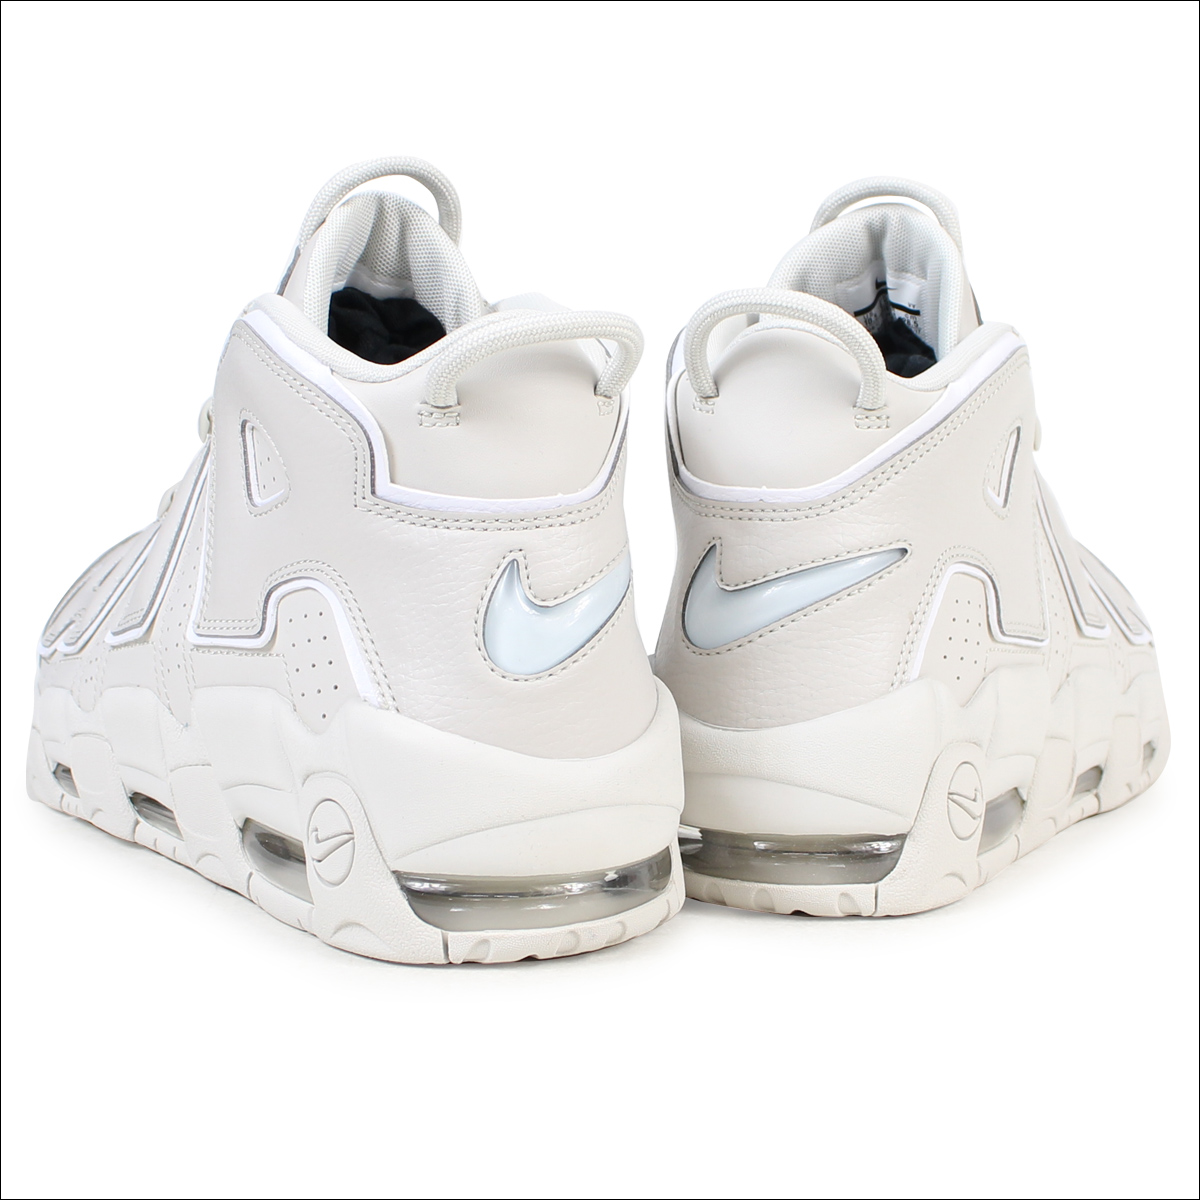 535cca6143 ... NIKE AIR MORE UPTEMPO 96 Nike air more up tempo sneakers 921,948-001  men's shoes